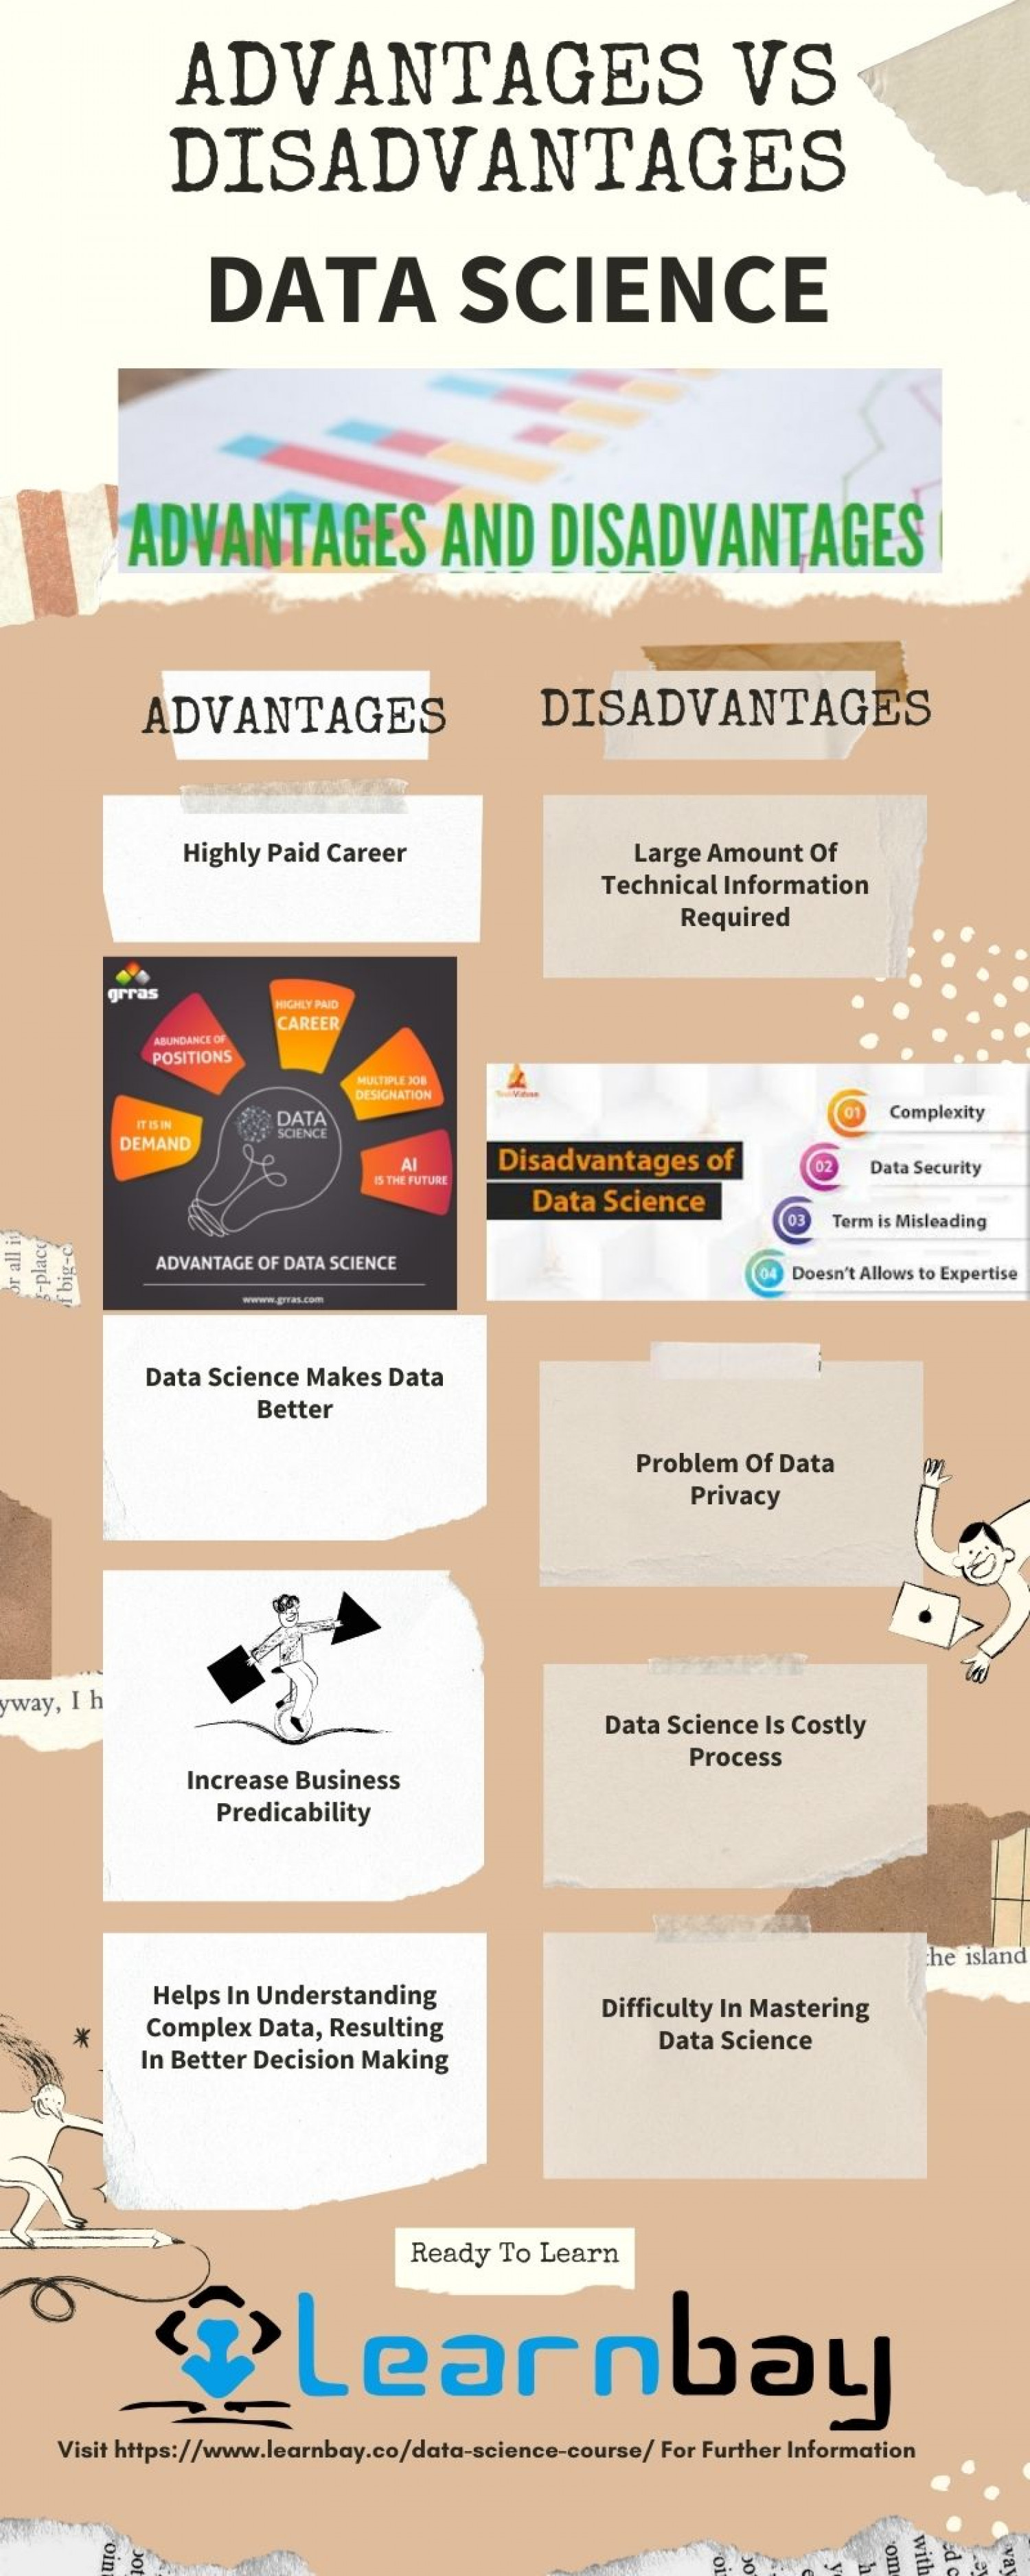 Data Science Advantages and Disadvantages Infographic